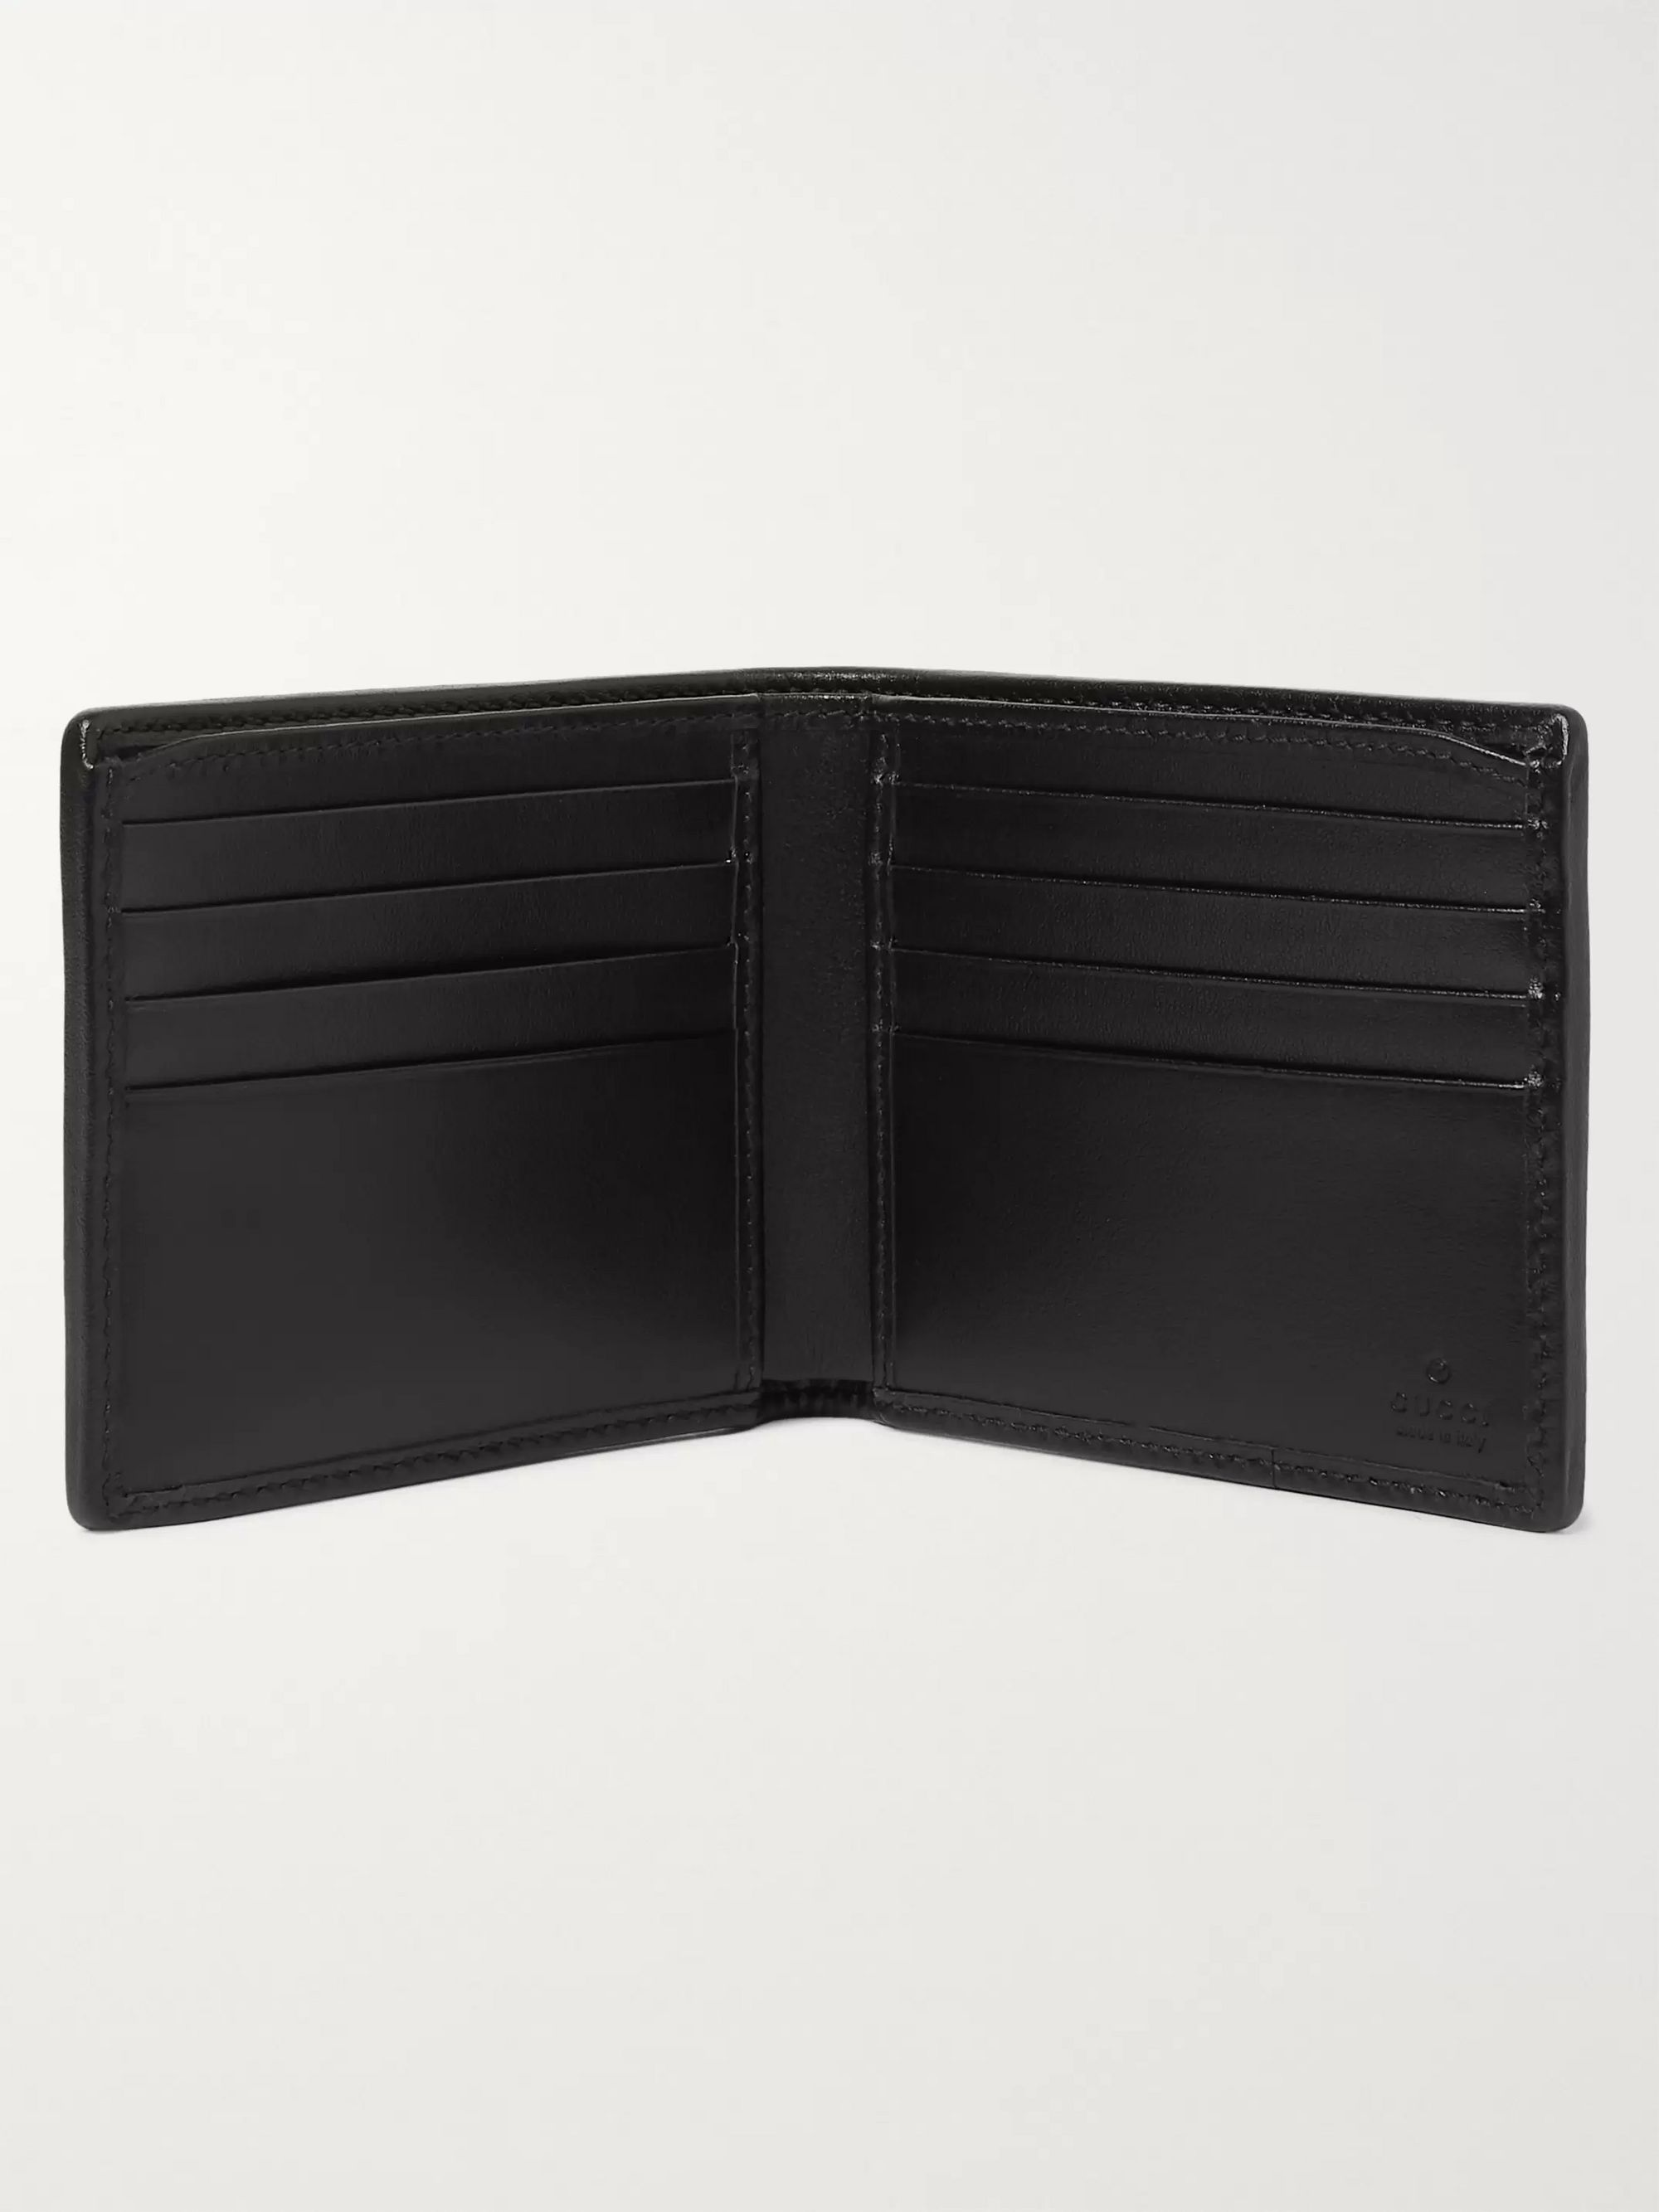 Gucci Rhombus Quilted Leather Billfold Wallet